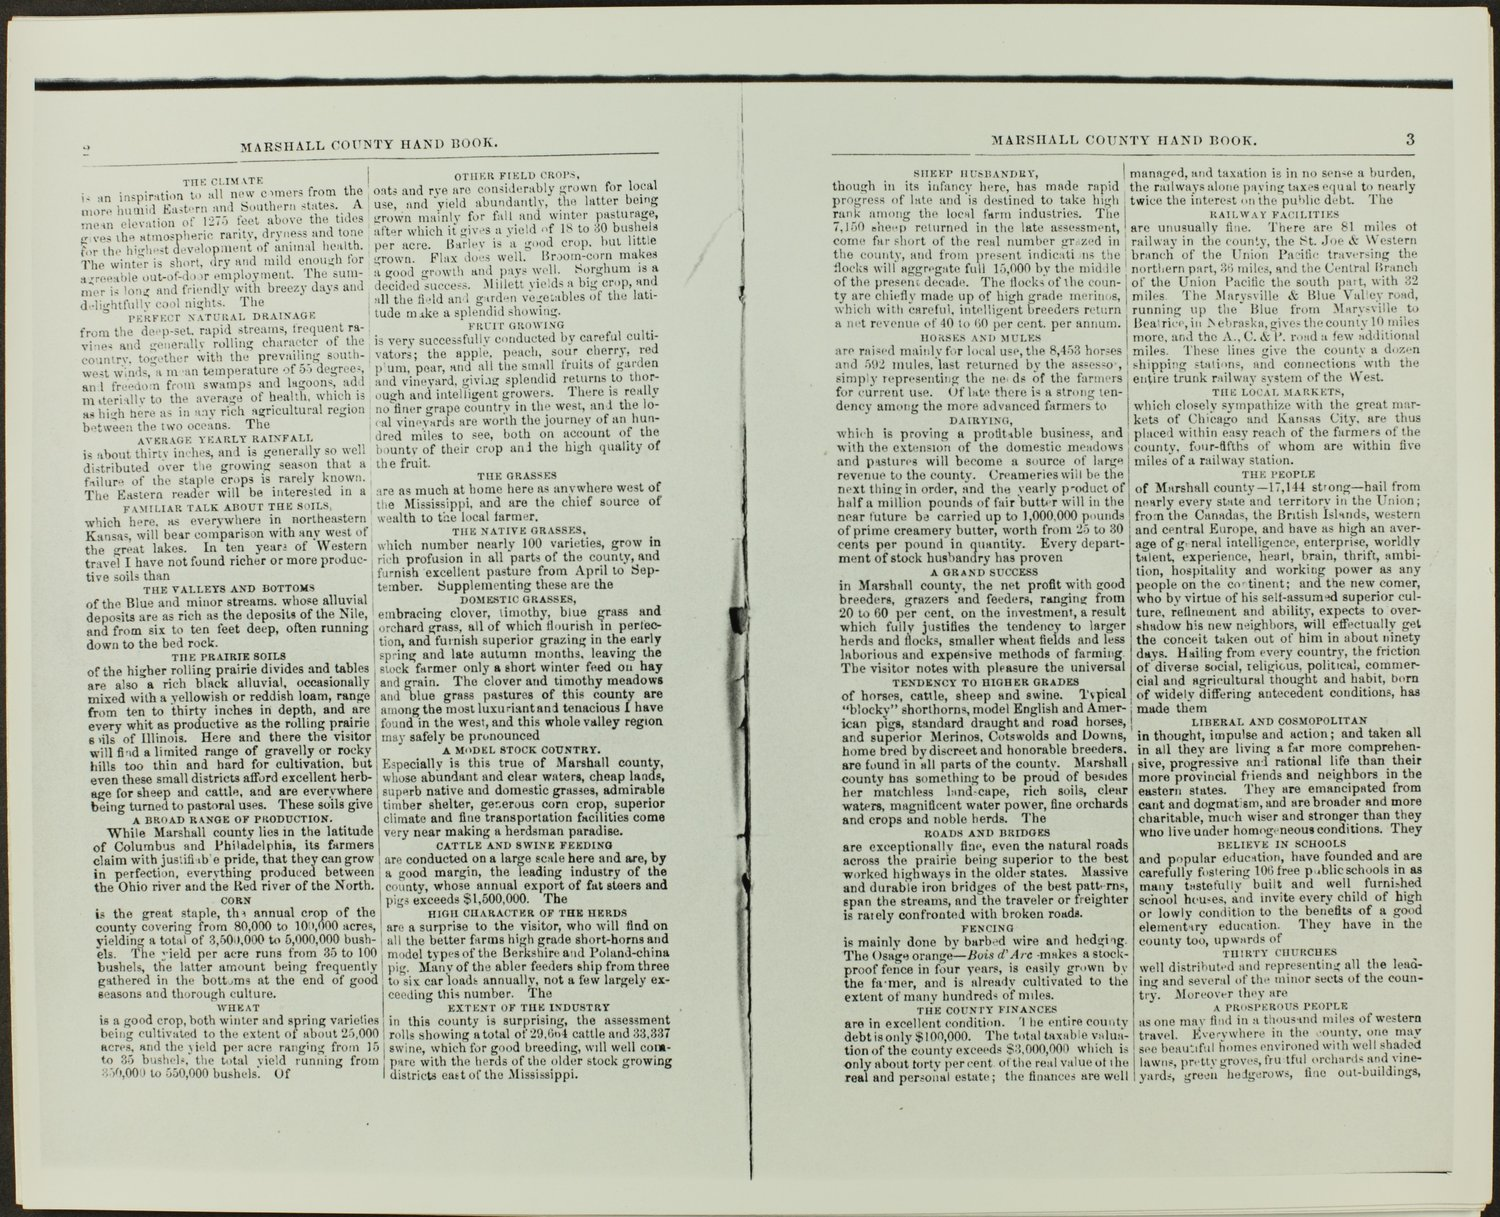 Handbook of Marshall County, Kansas - Pages 2 & 3